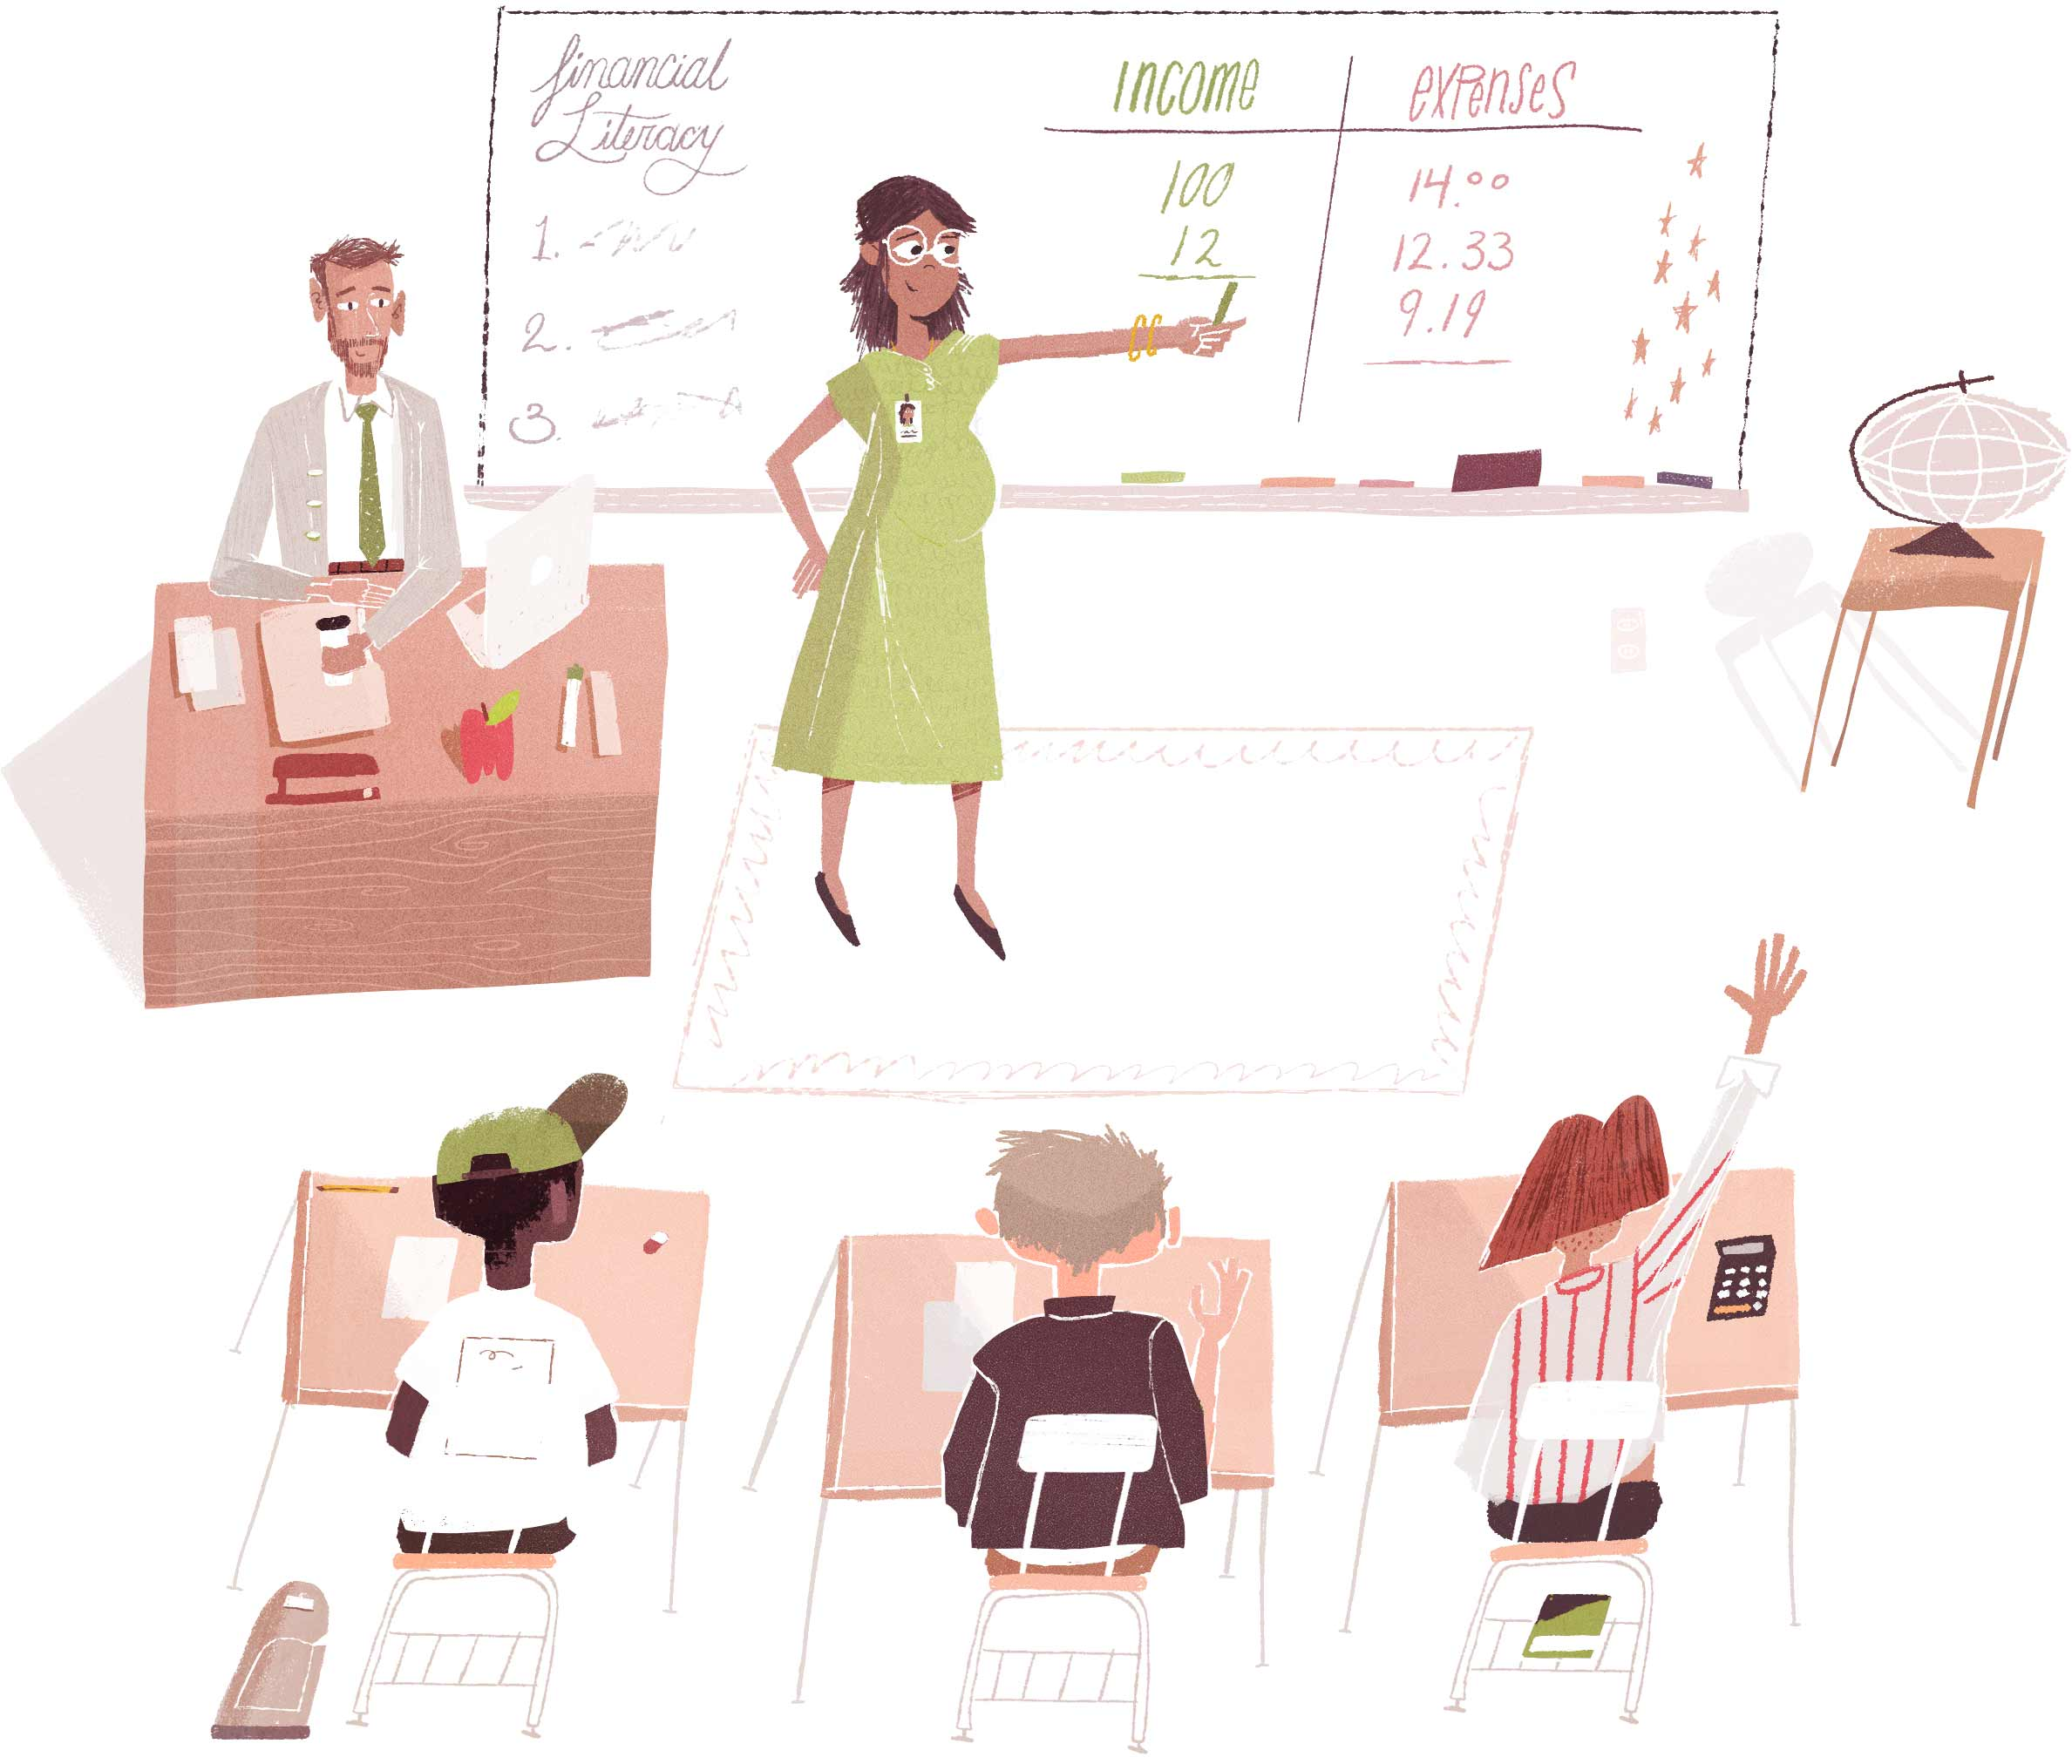 Volunteer Service Tracking - Teaching a Financial Literacy Class Illustration